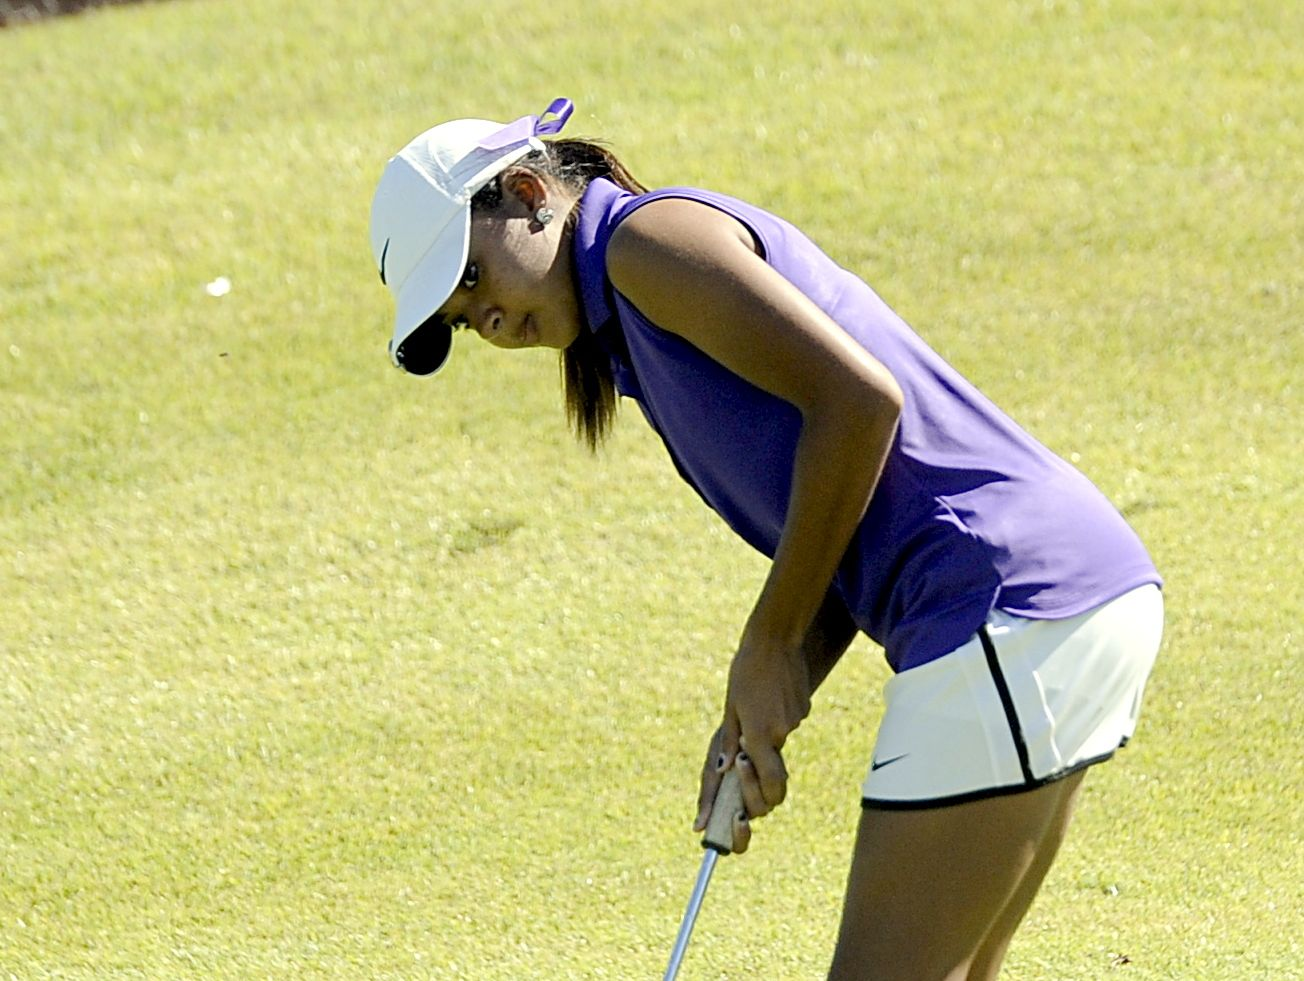 Clarksville senior Mariah Smith watches her putt on the 18th green. Smith shot 68 on Wednesday.